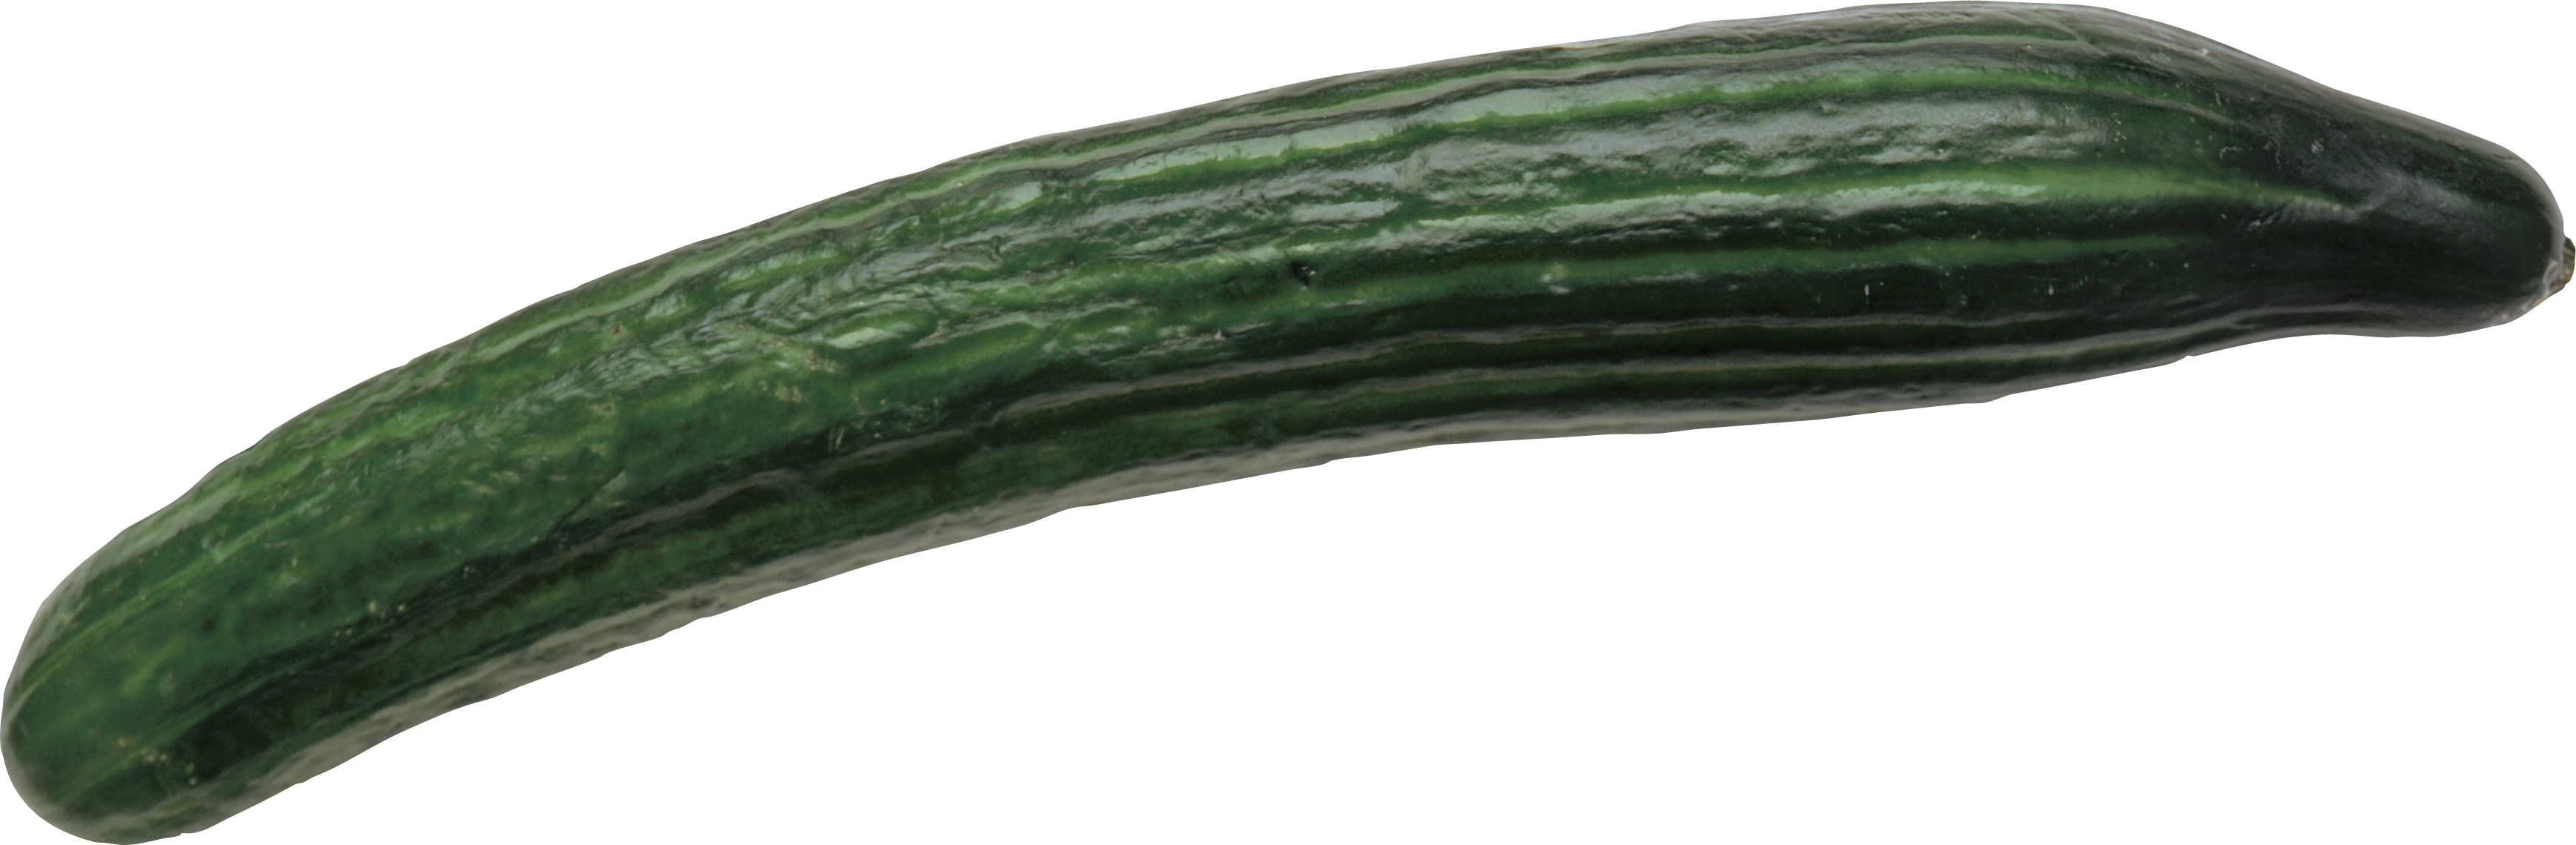 Cucumber four isolated stock. Zucchini clipart green squash